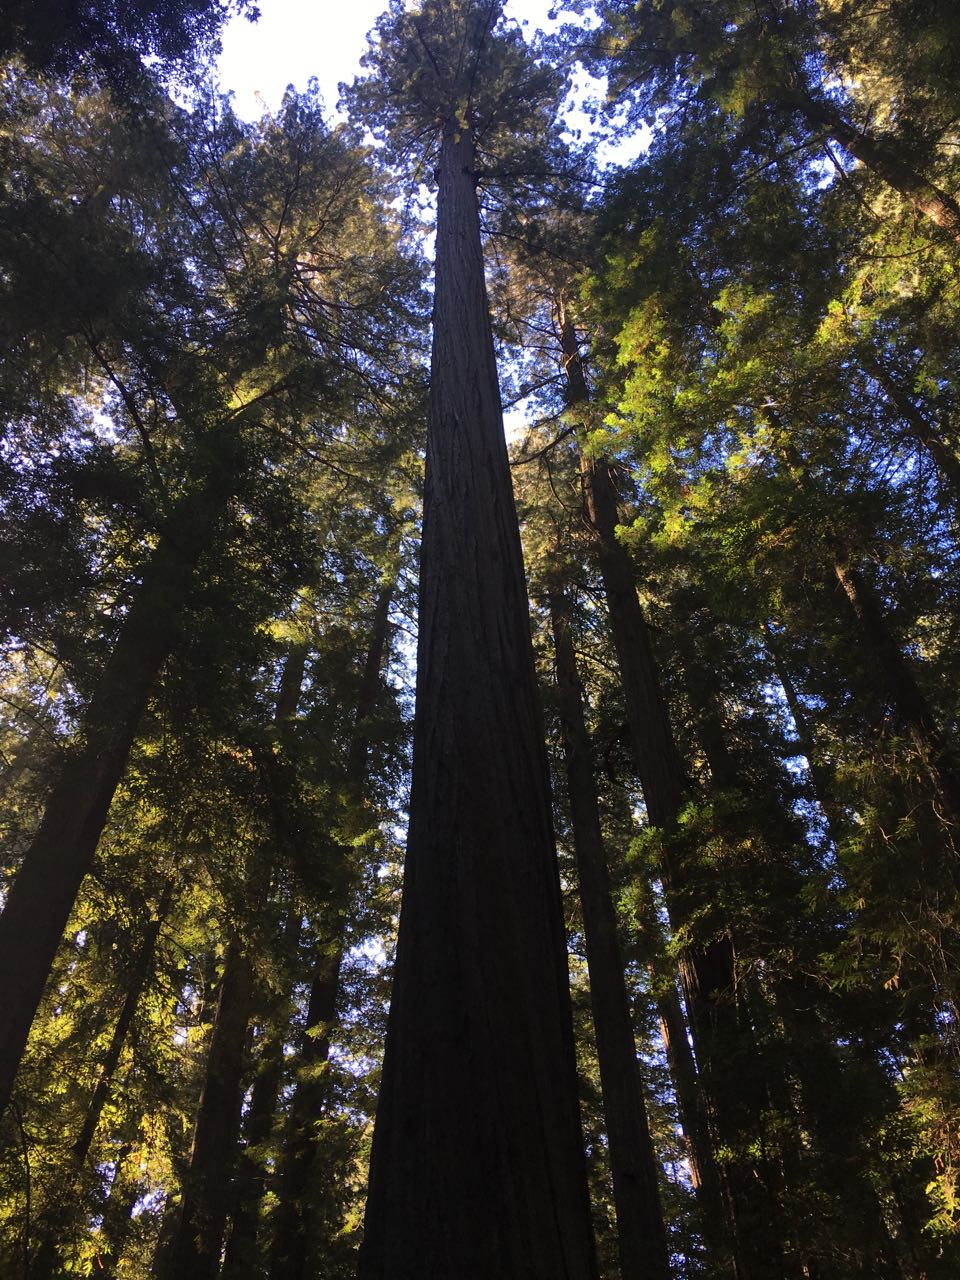 Redwoods 2017 10 01 4 Of 244